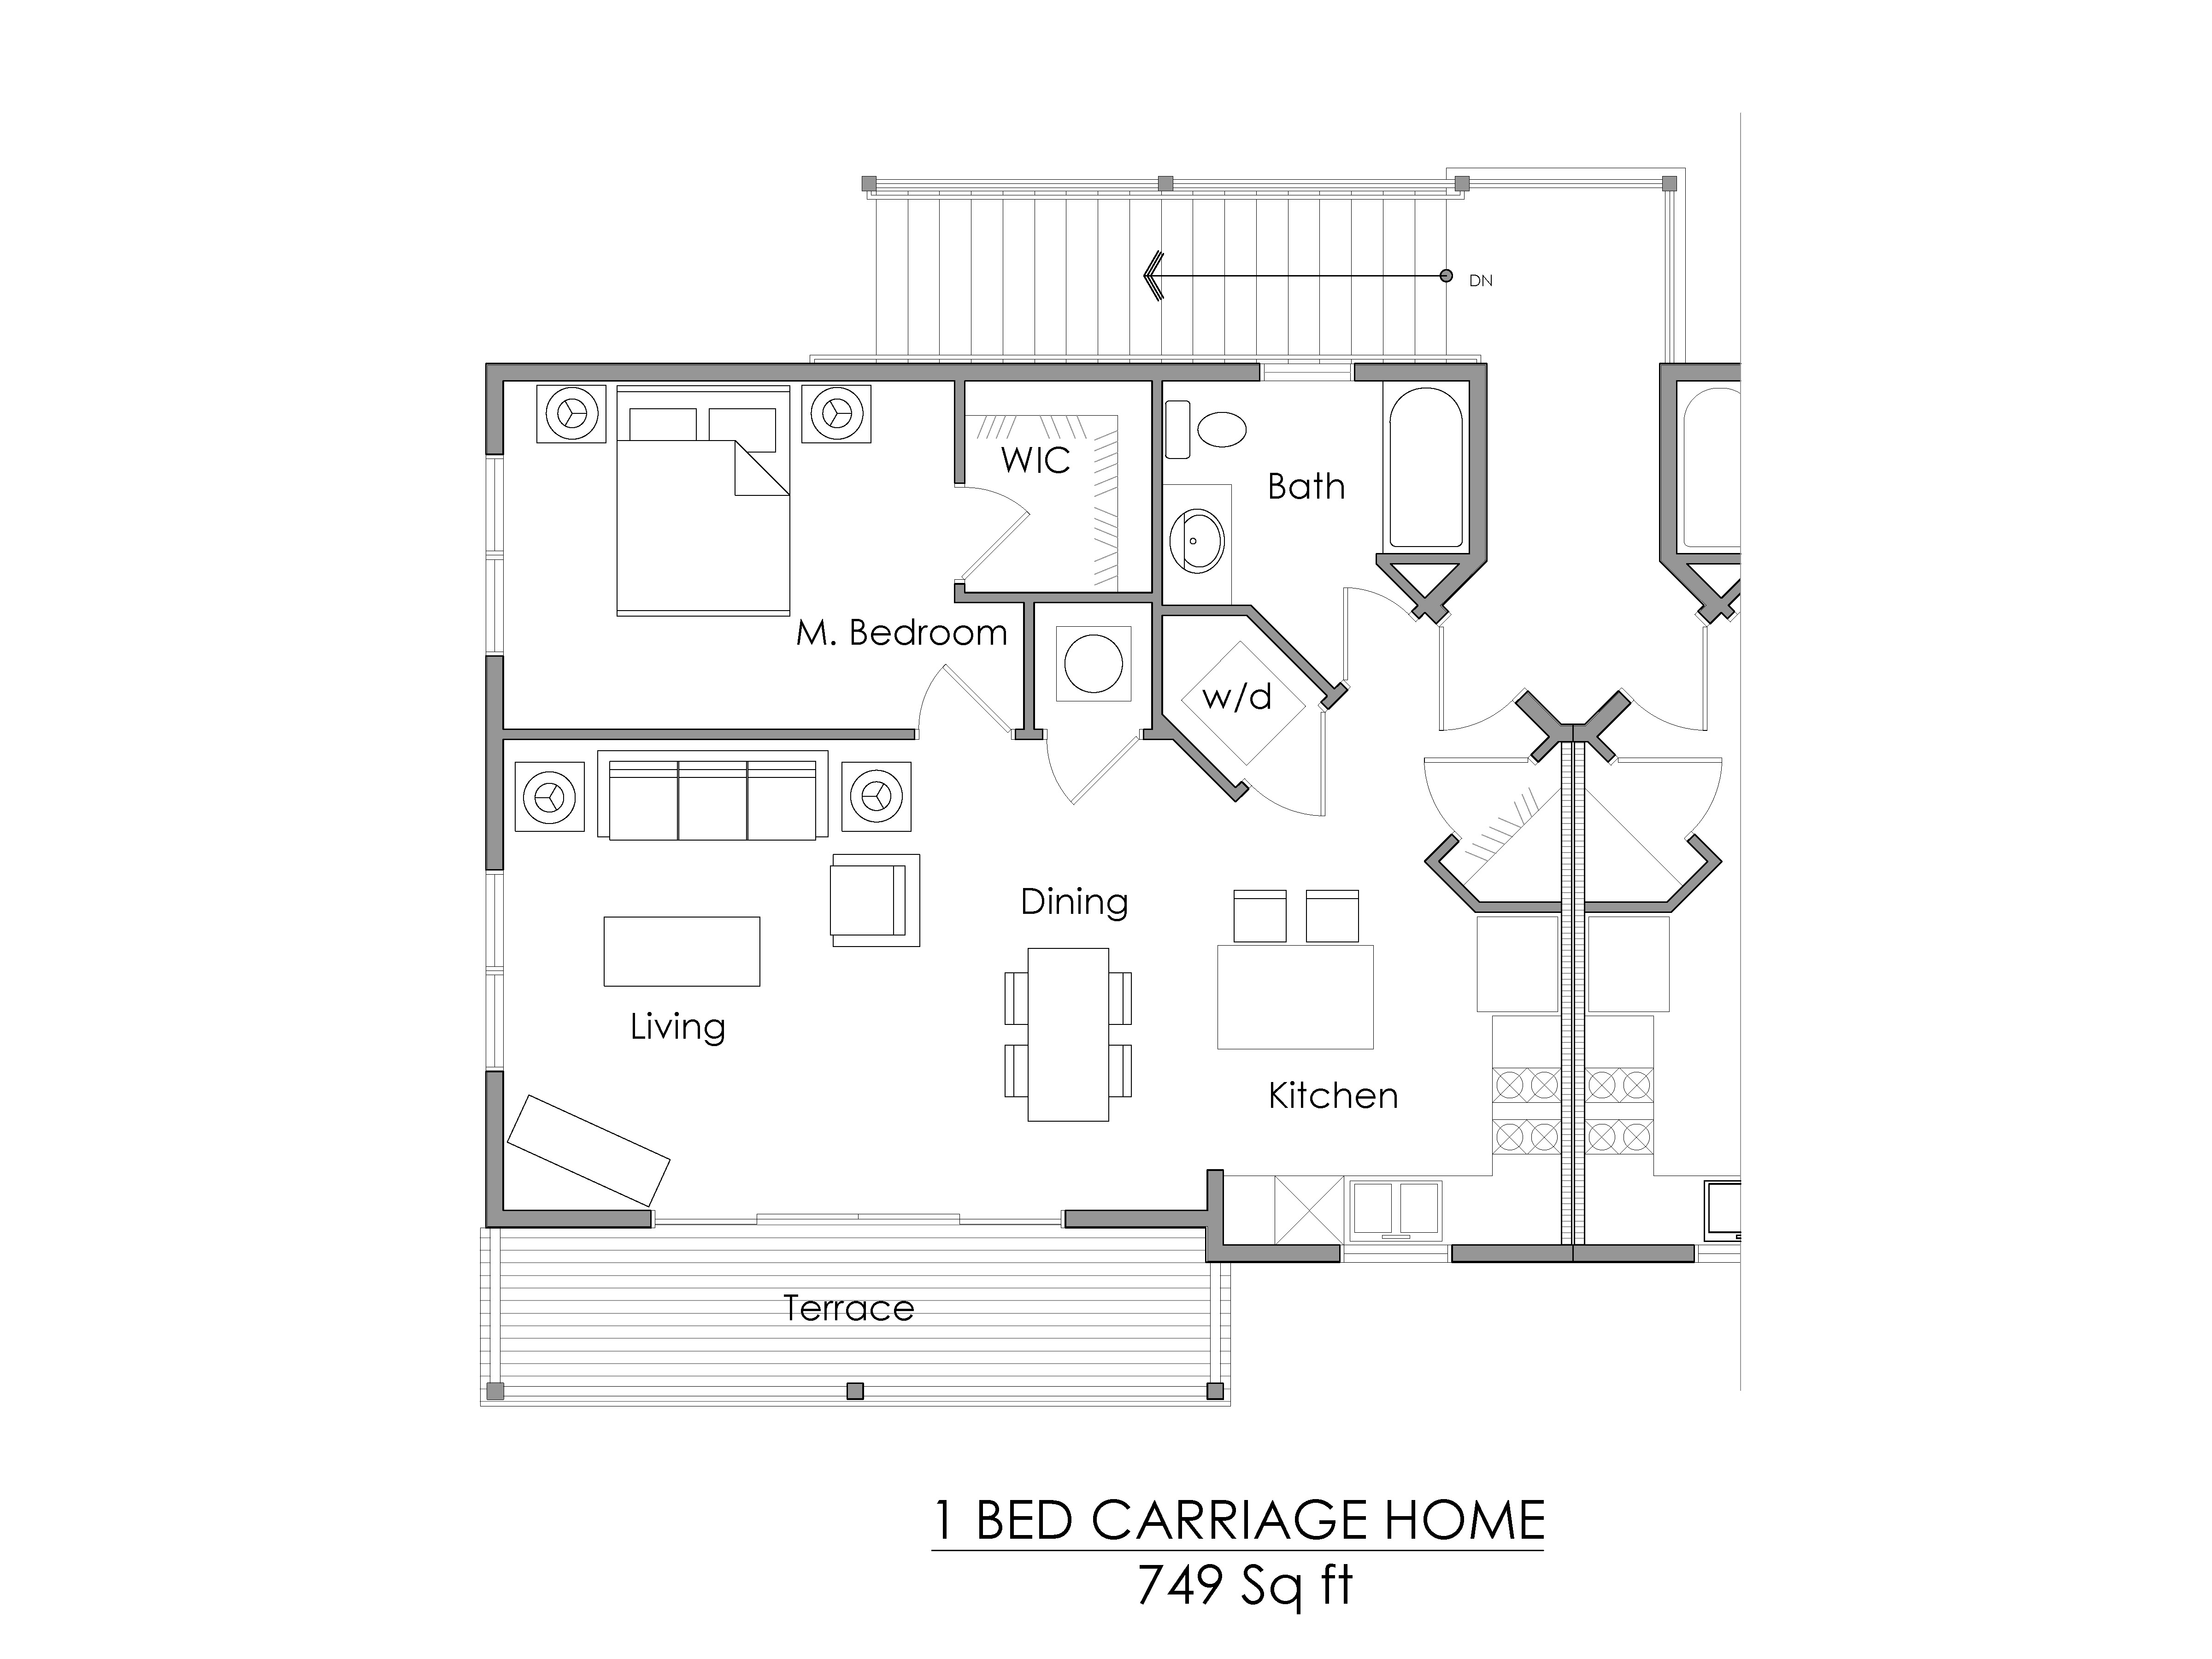 Willoughby-estates-holt-mi-carriage-home-floor-plan